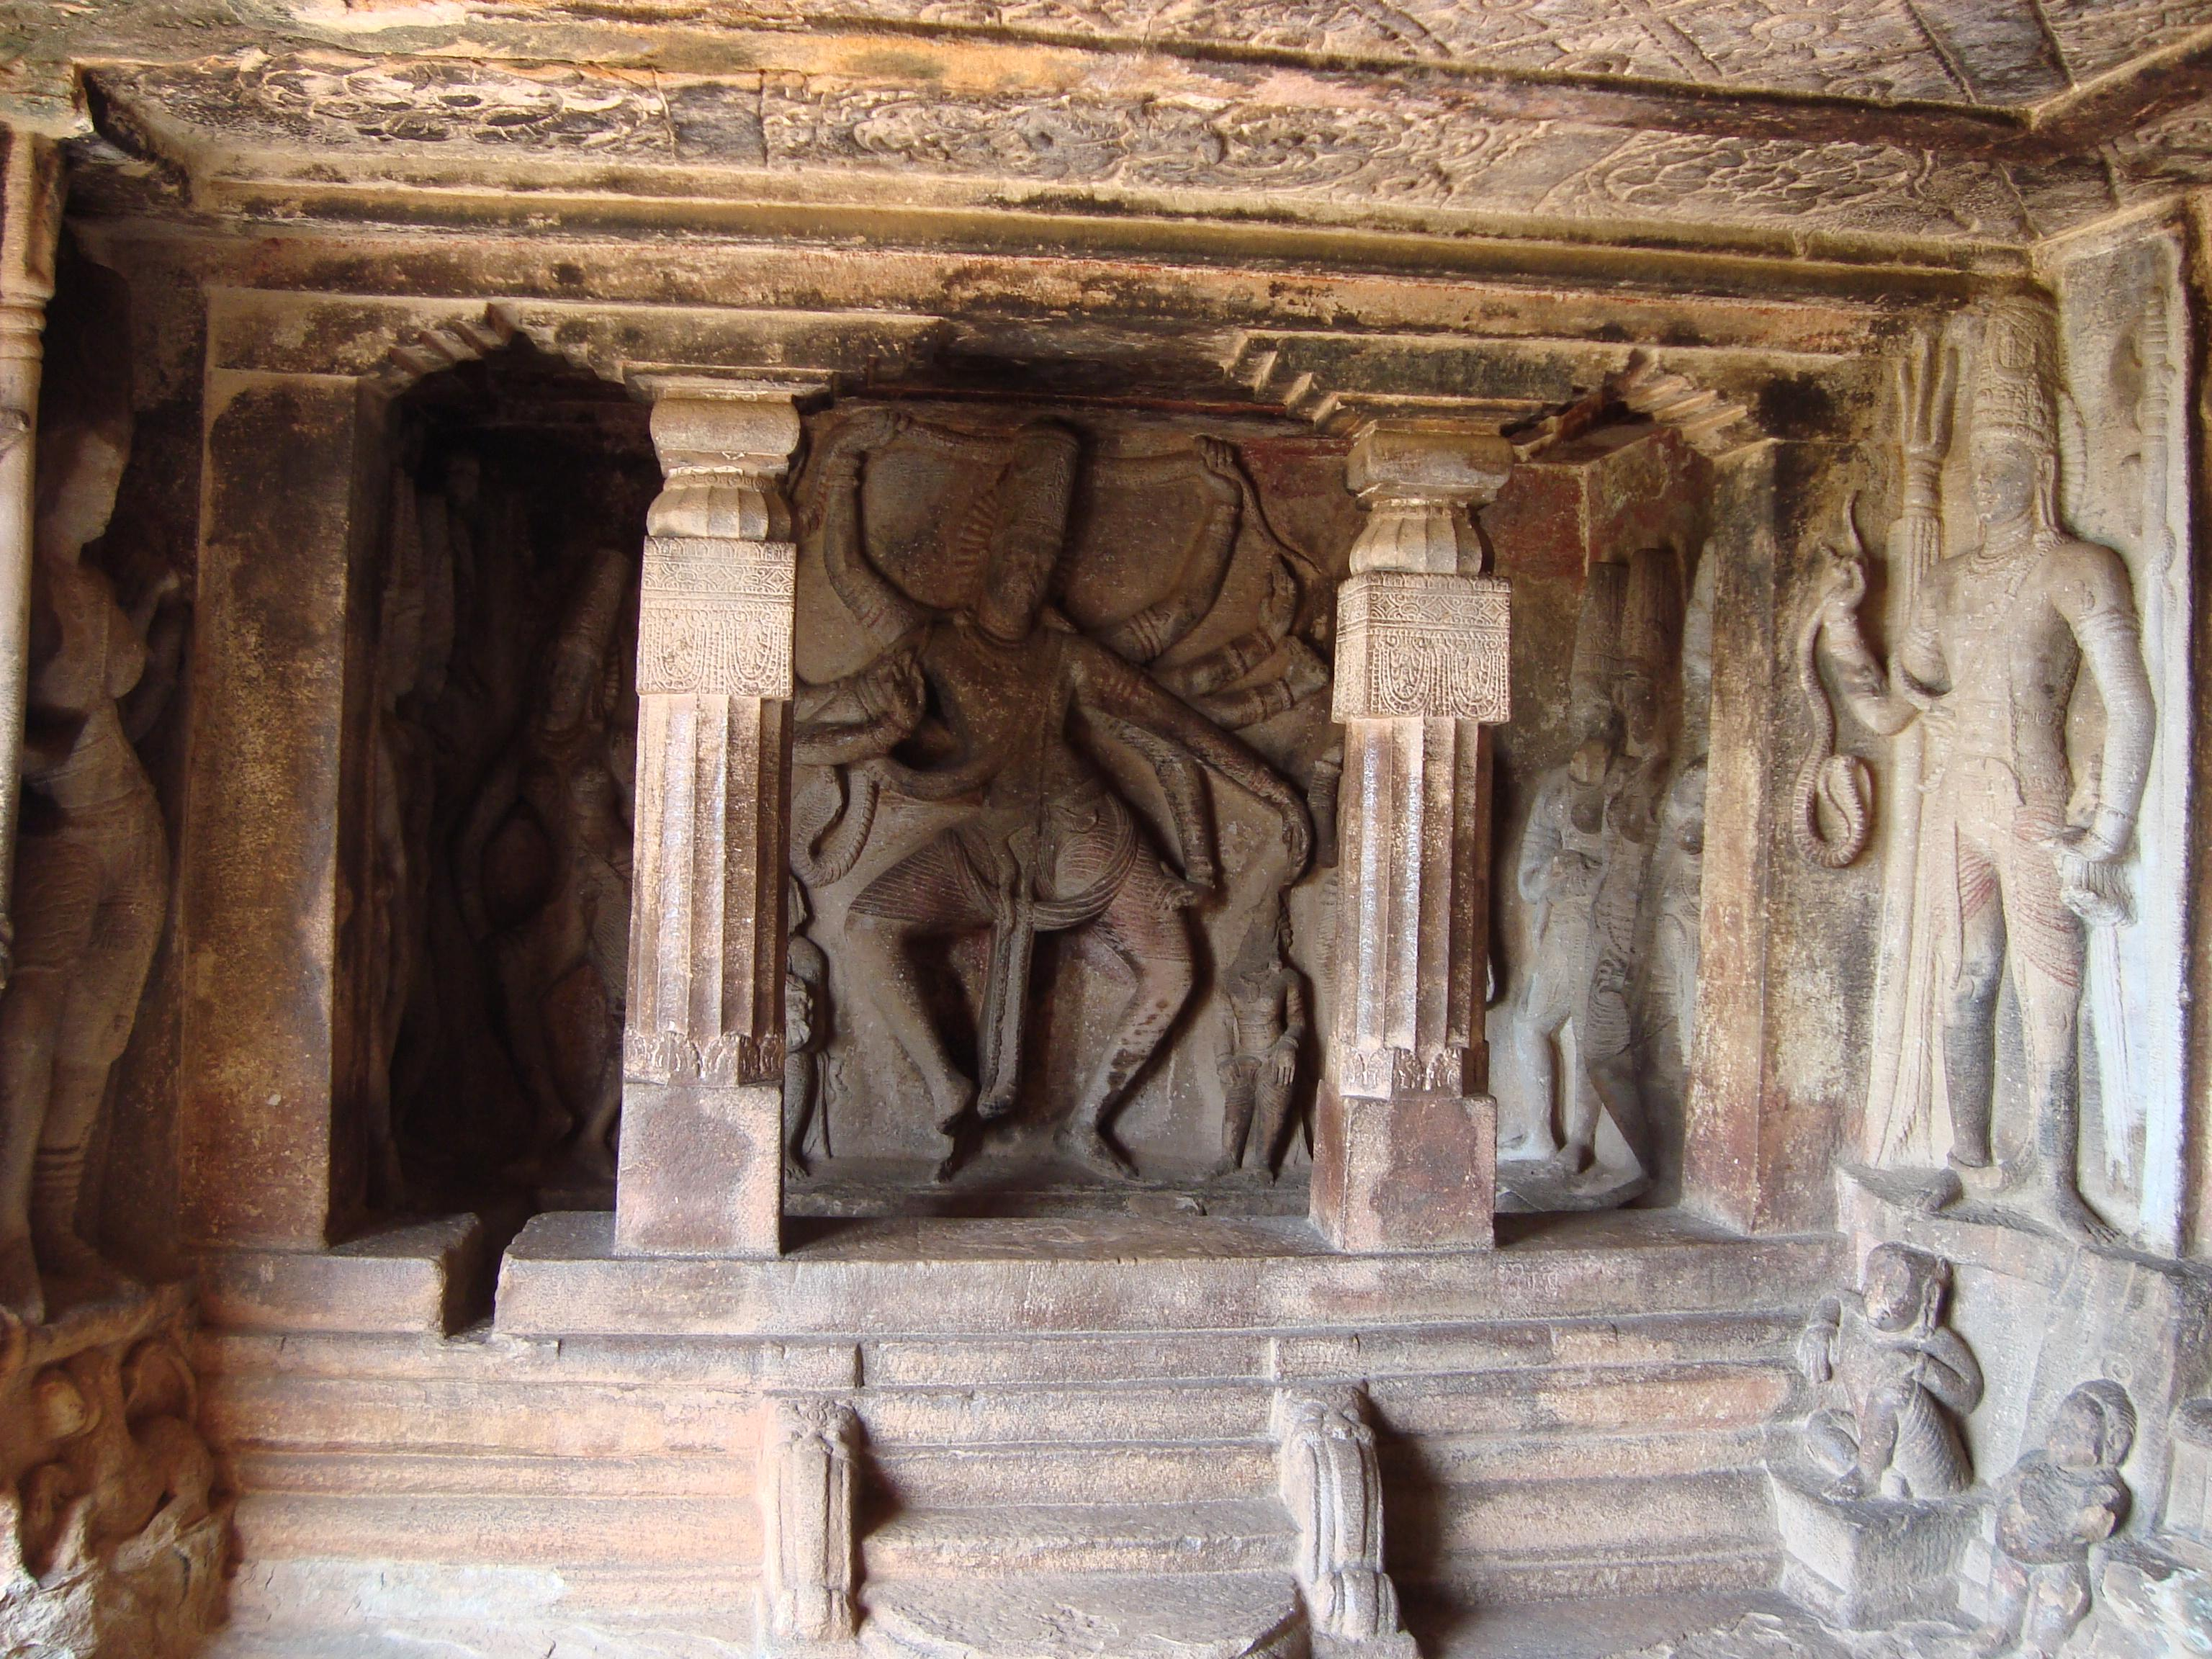 Inside the Ravana Phadi cave, Aihole